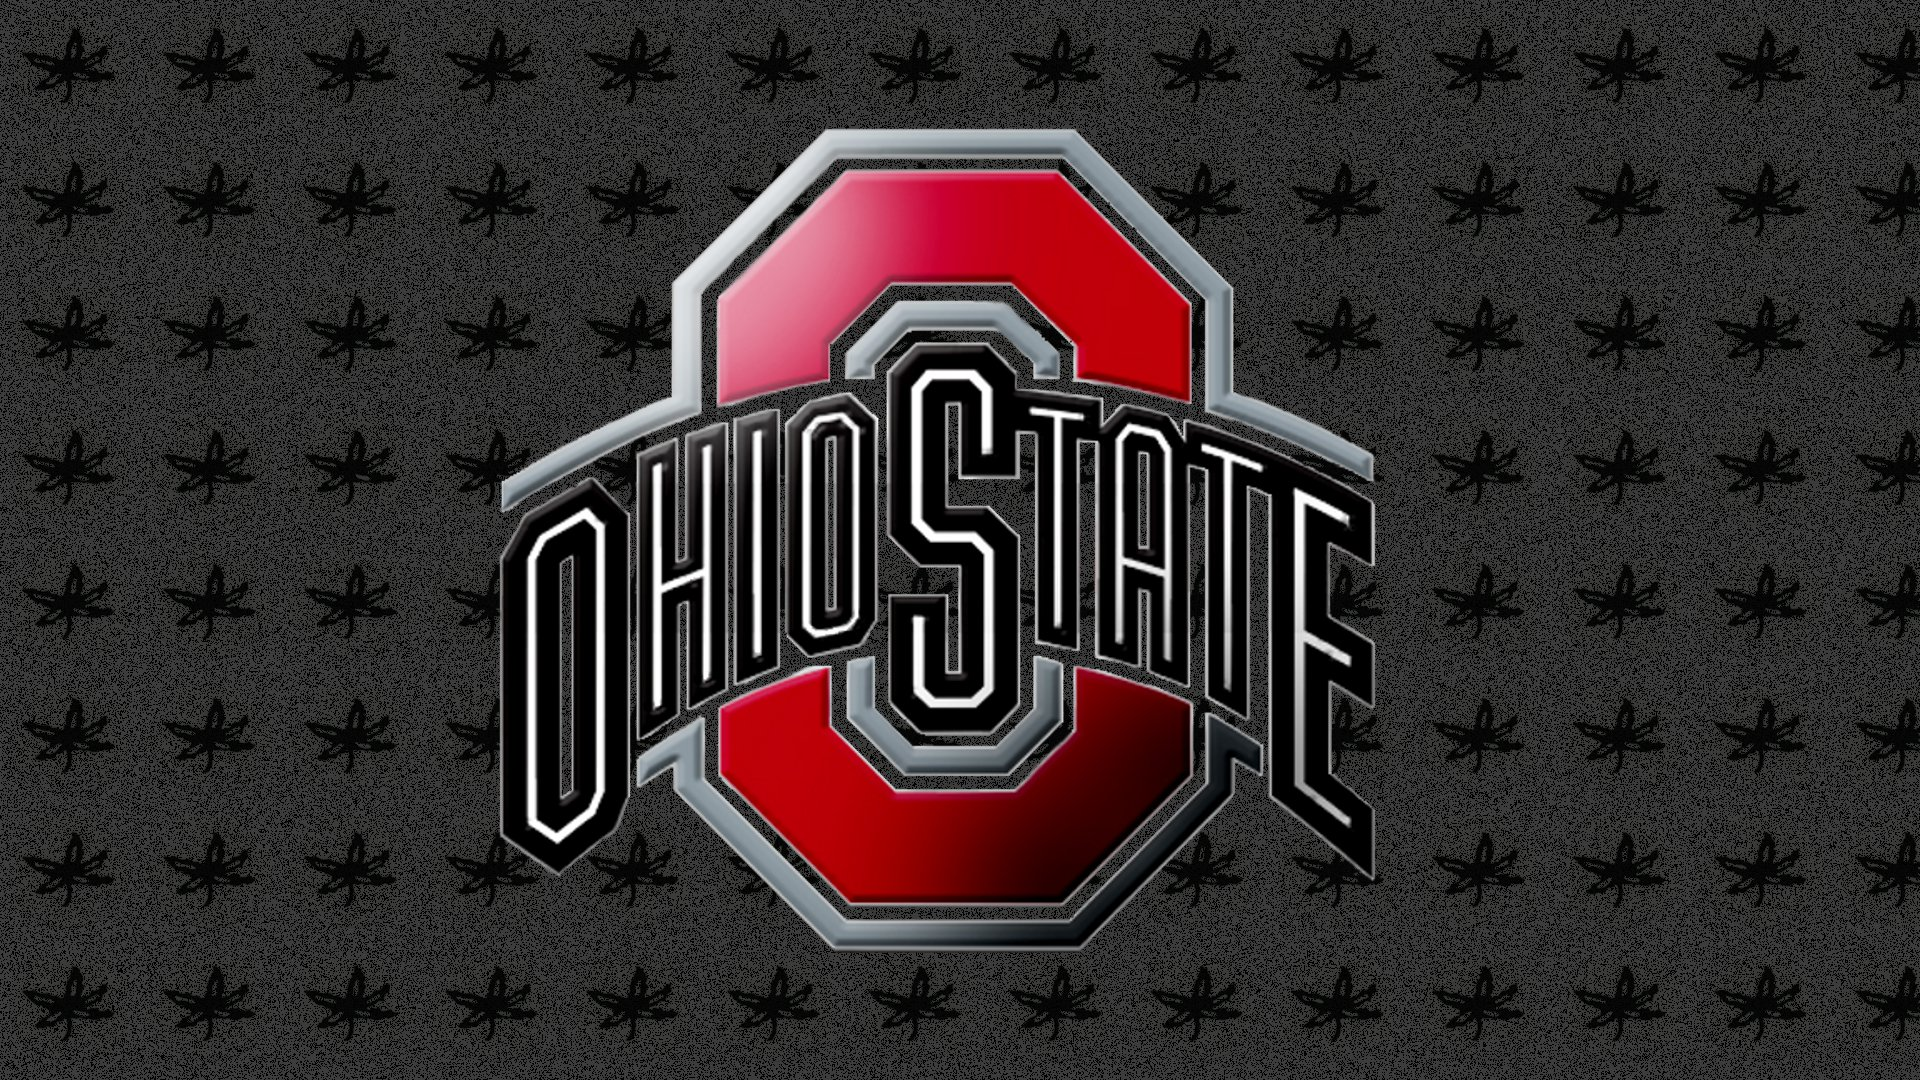 Ohio State Football images OSU Desktop Wallpaper 55 HD 1920x1080